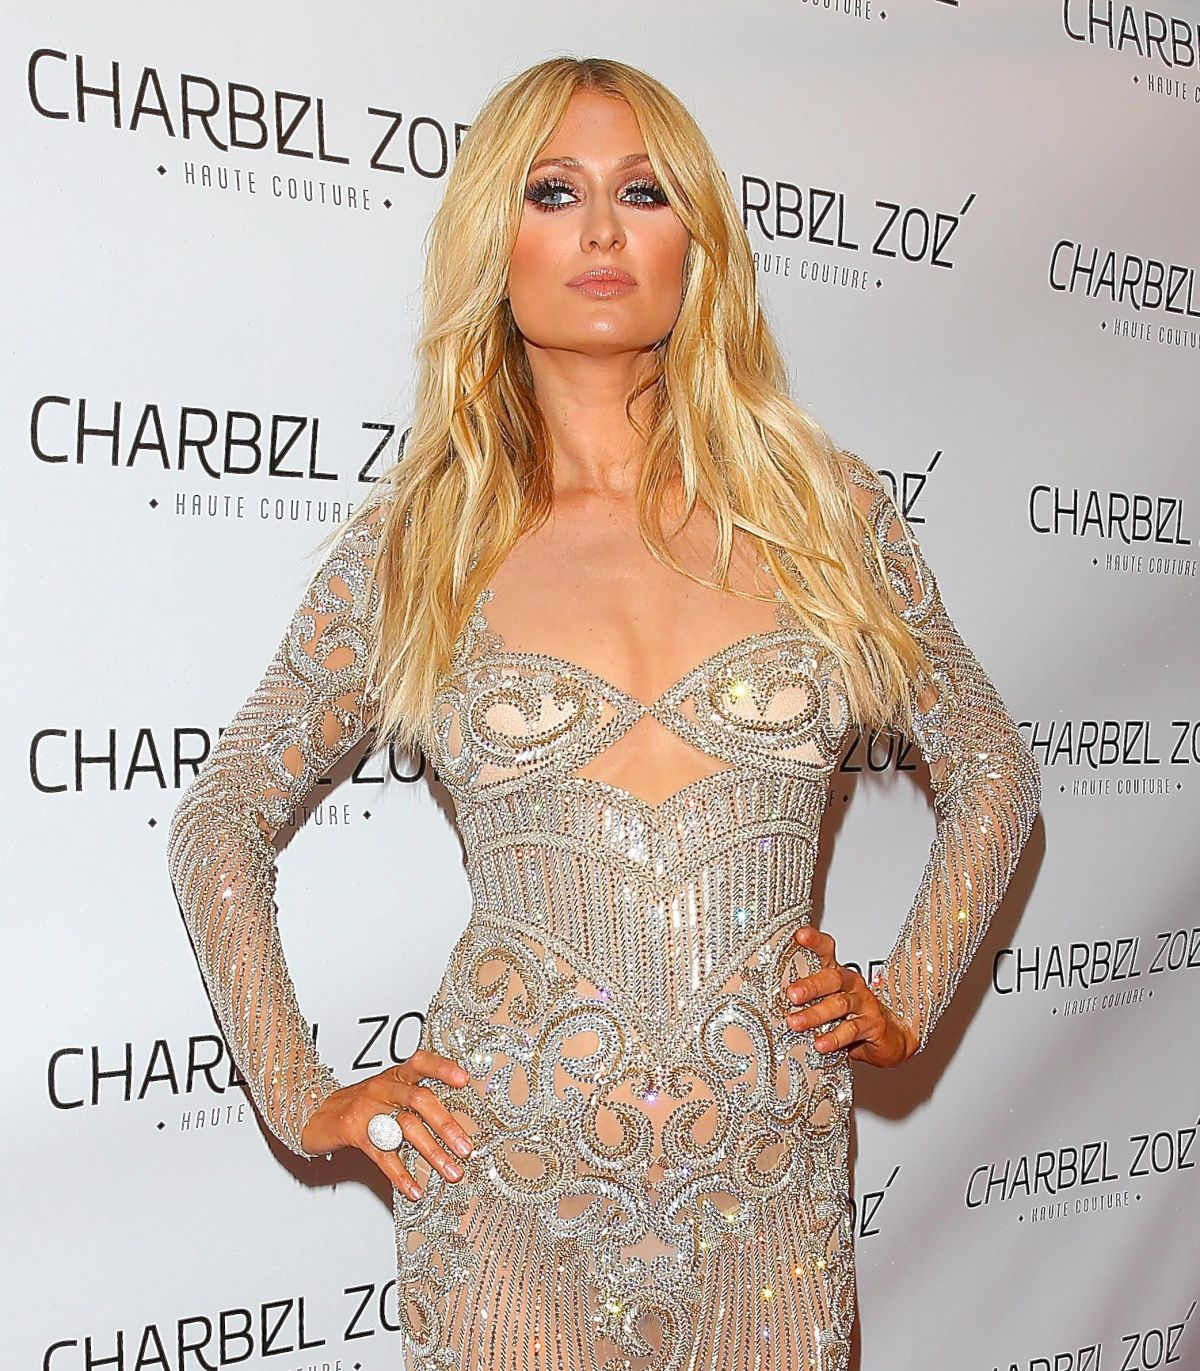 PARIS HILTON at Charbel Zoe Paris Hilton